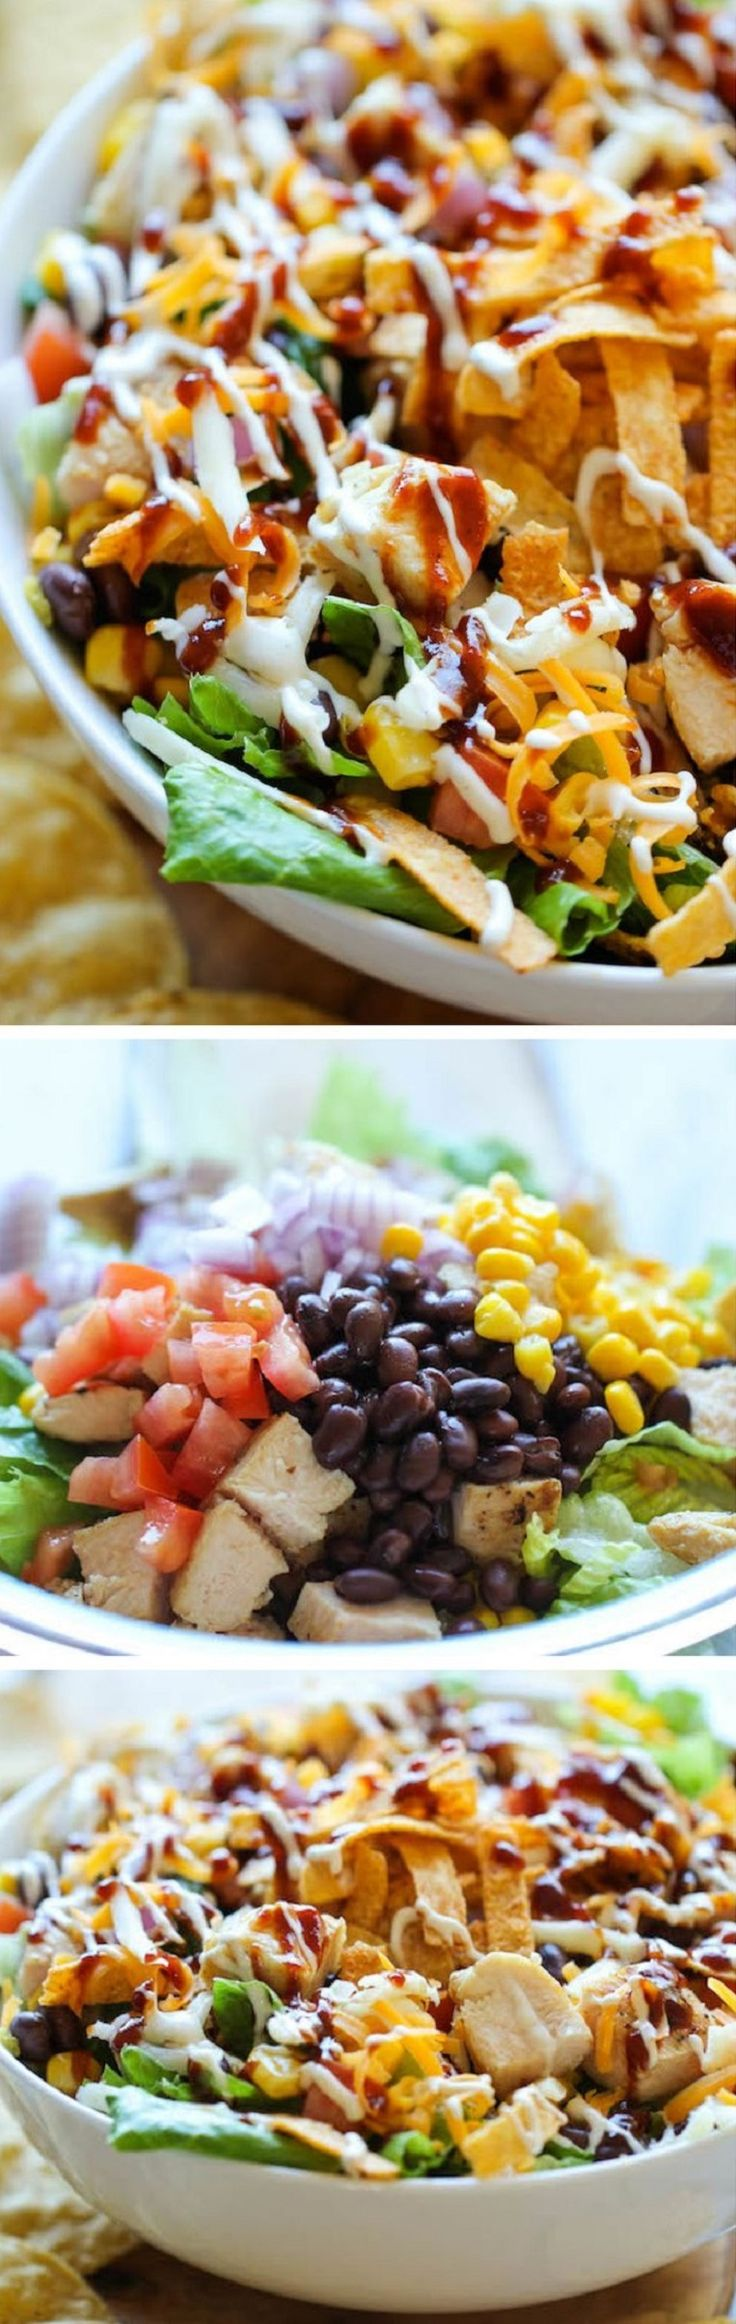 BBQ Chicken Salad - 18 Super-Healthy Chicken Salads | GleamItUp